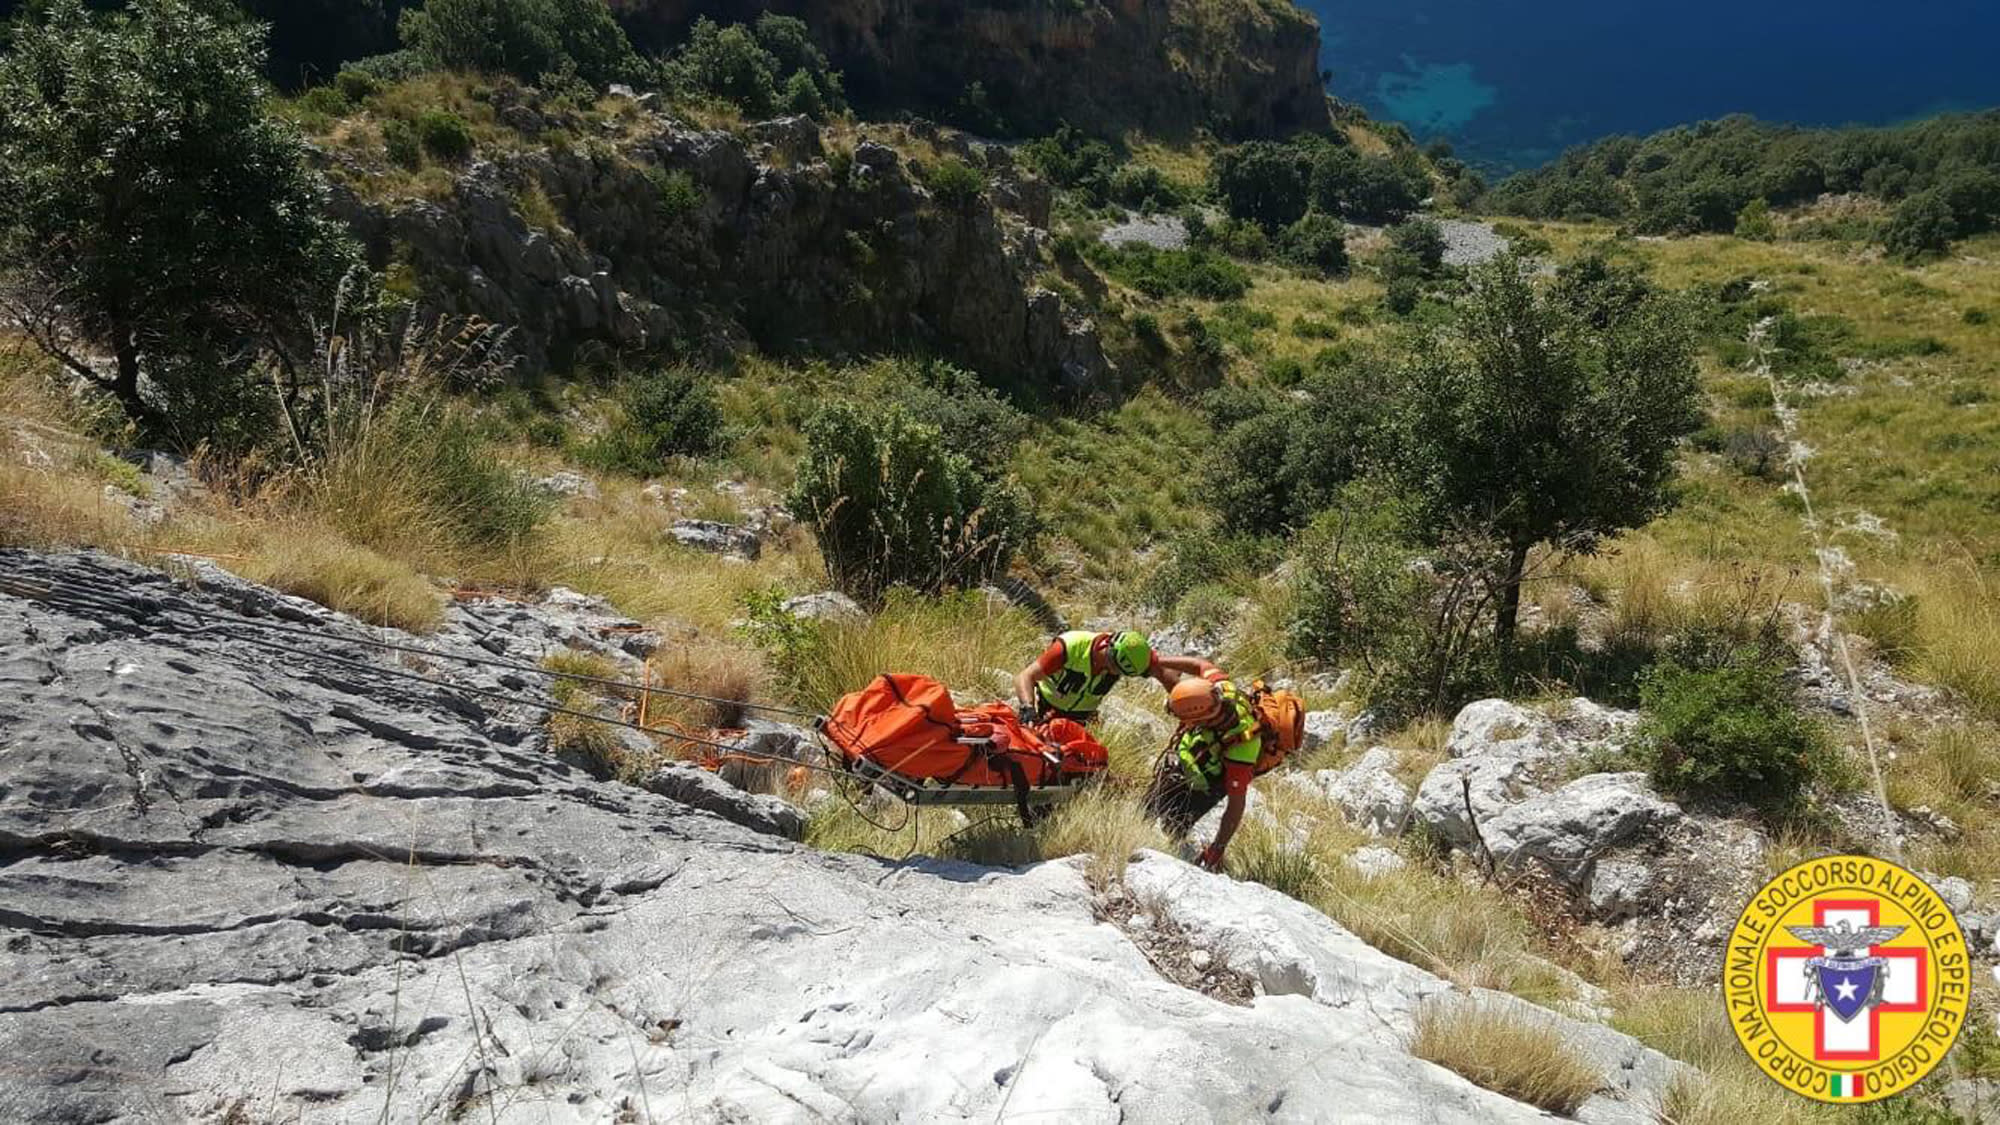 Members of the Italian mountain rescue team search for a French hiker in the Cilento region, Southern Italy, Monday, Aug. 19, 2019. Italian mountain rescue squads have recovered the body of a French hiker who fell into a ravine and broke his leg. Nine days of search ended Sunday when alpine rescue spotted Simon Gautier's backpack and then his body in a ravine in the Cilento region of Southern Italy. Crews were able to recover the body Monday. (Corpo Nazionale Soccorso Alpino e Speleologico via AP)